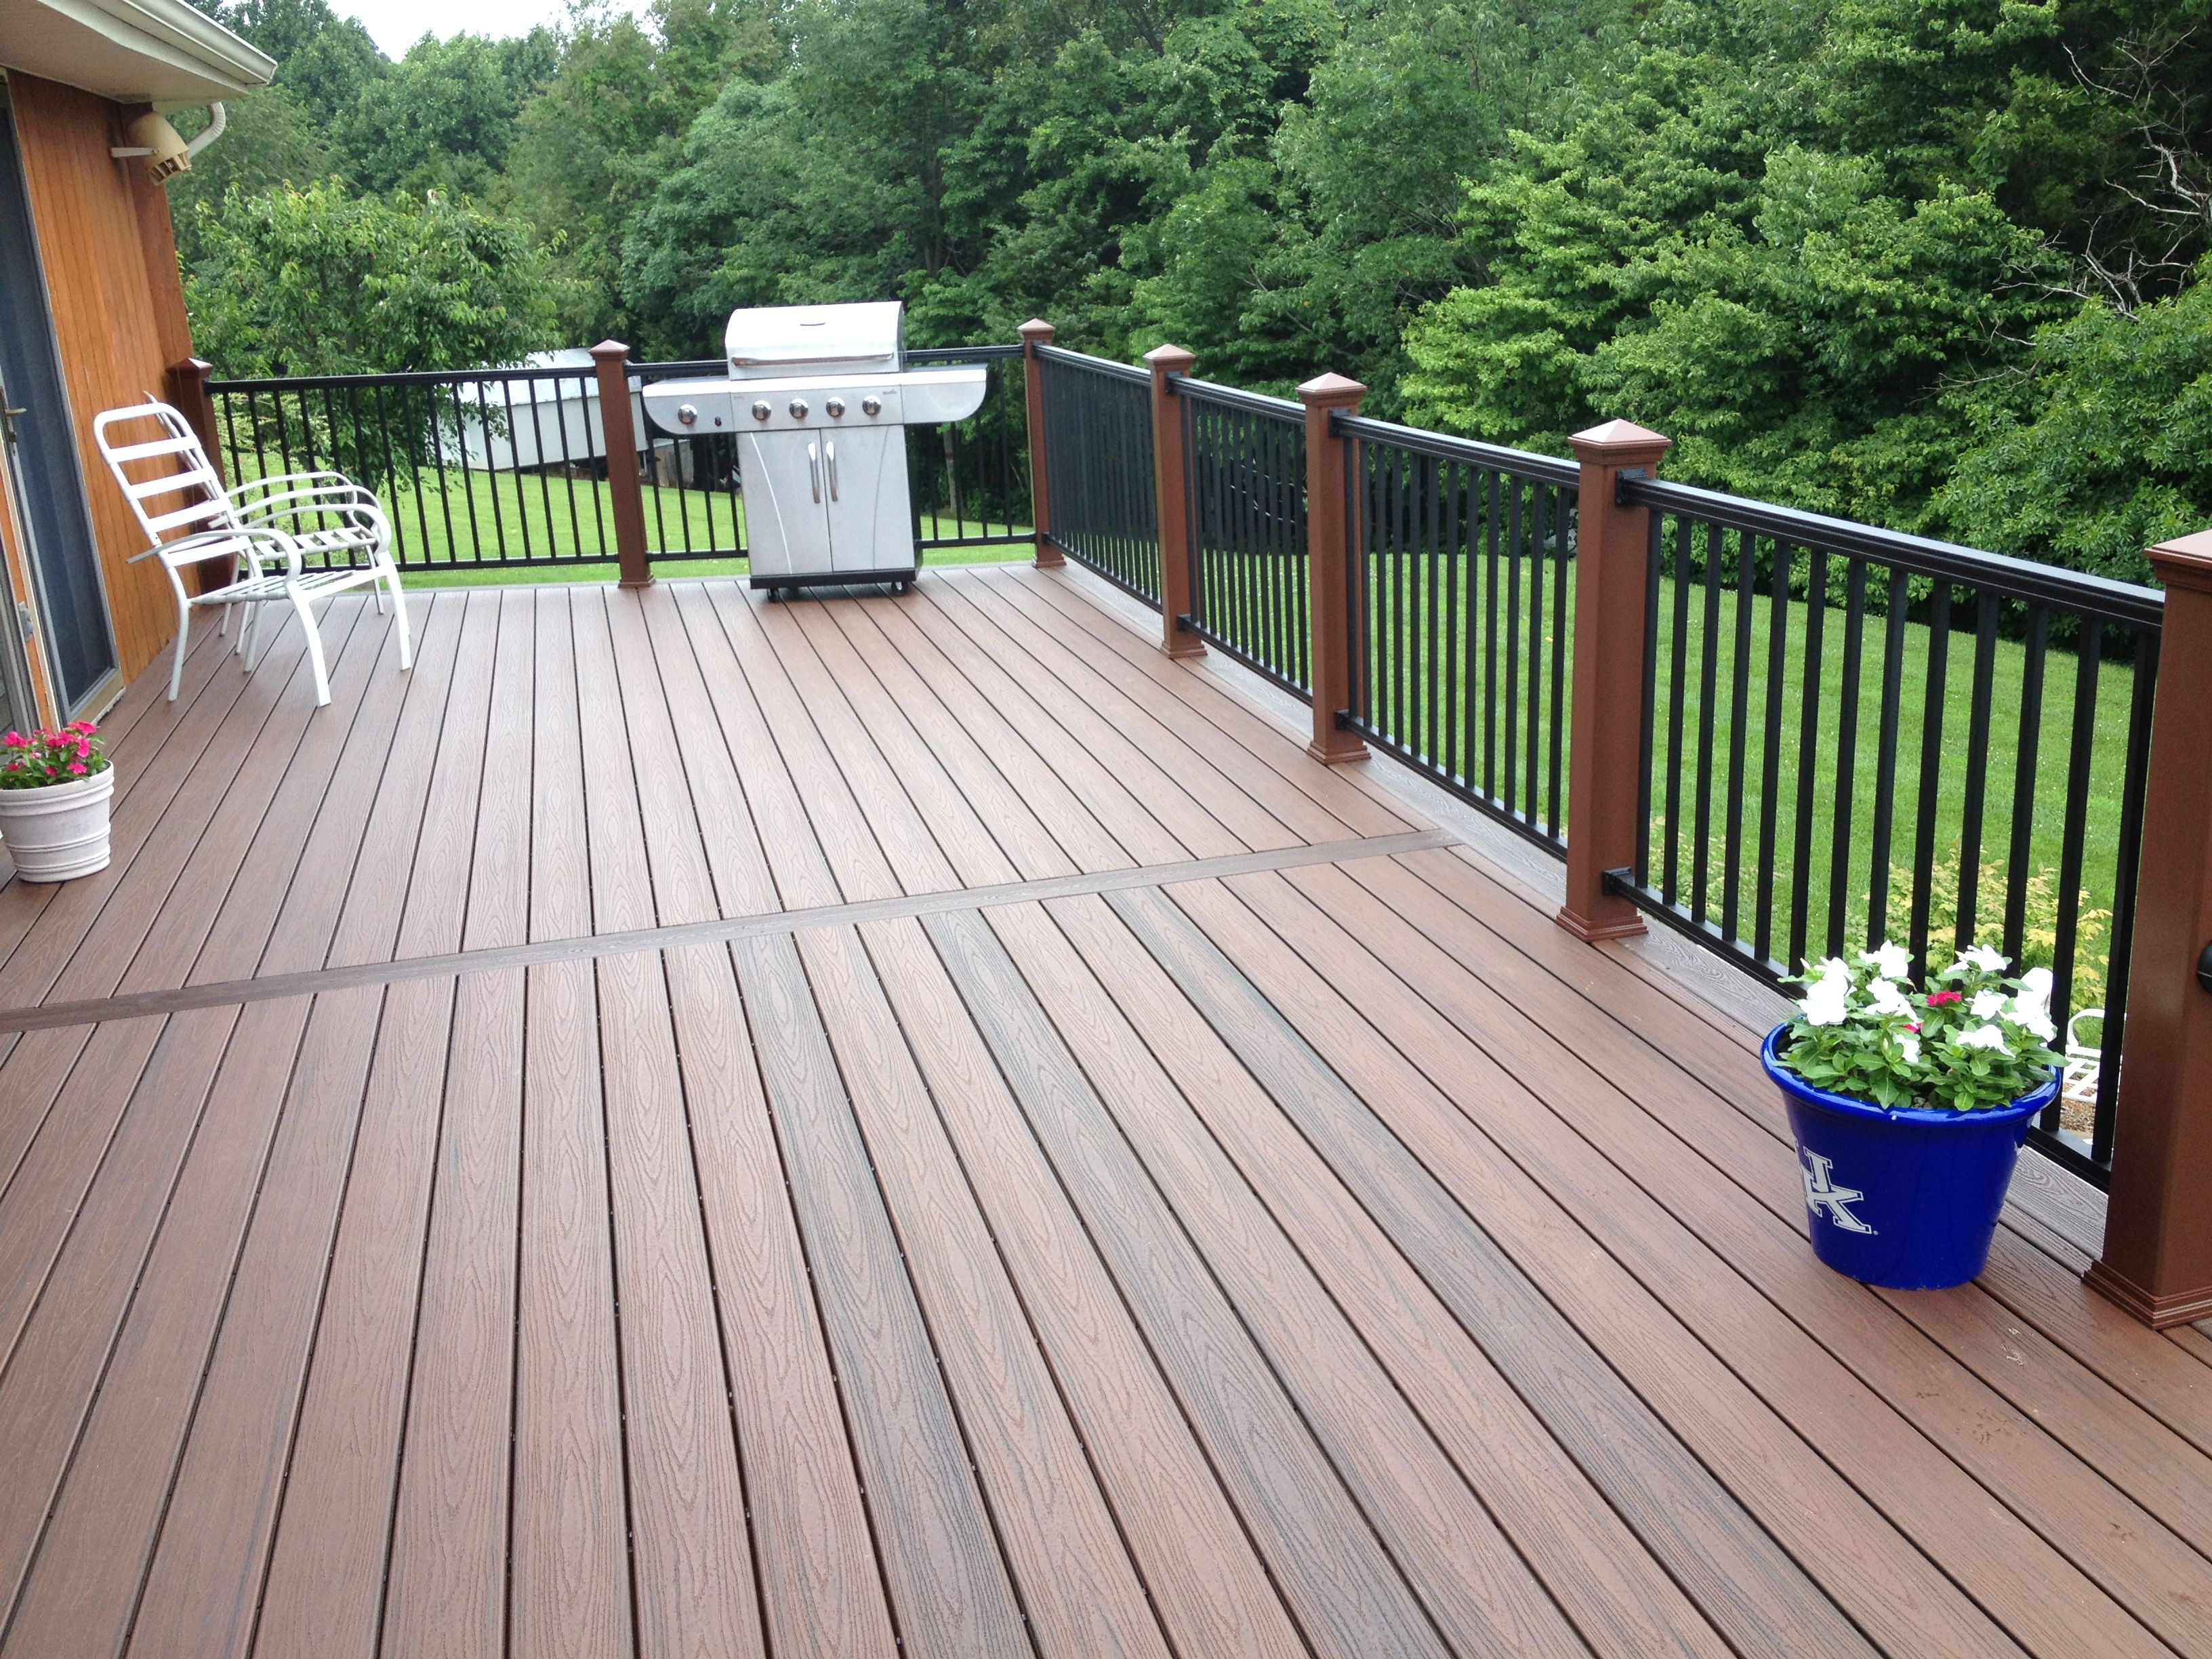 Synthetic Deck Boards The Long Deck Is Divided Into Two Sections With A Breaker Board